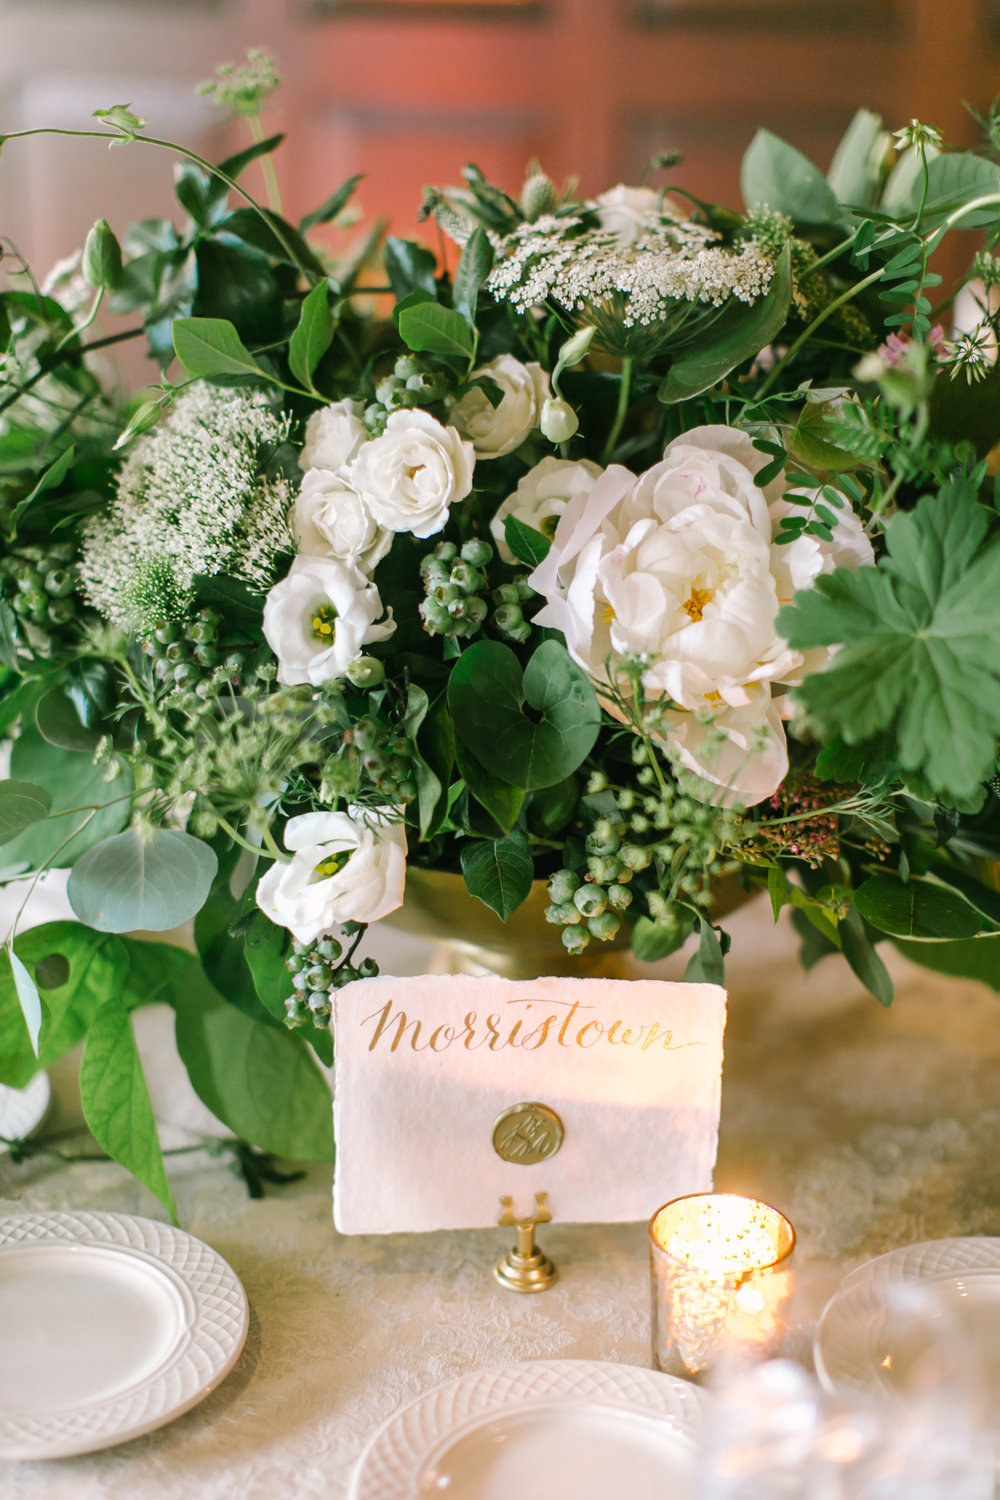 Events - We design floral arrangements for events of all sizes, from intimate occasions to large-scale celebrations. We provide full concept floral/event design, floral/event decor installations, and custom order flowers for each and every event.